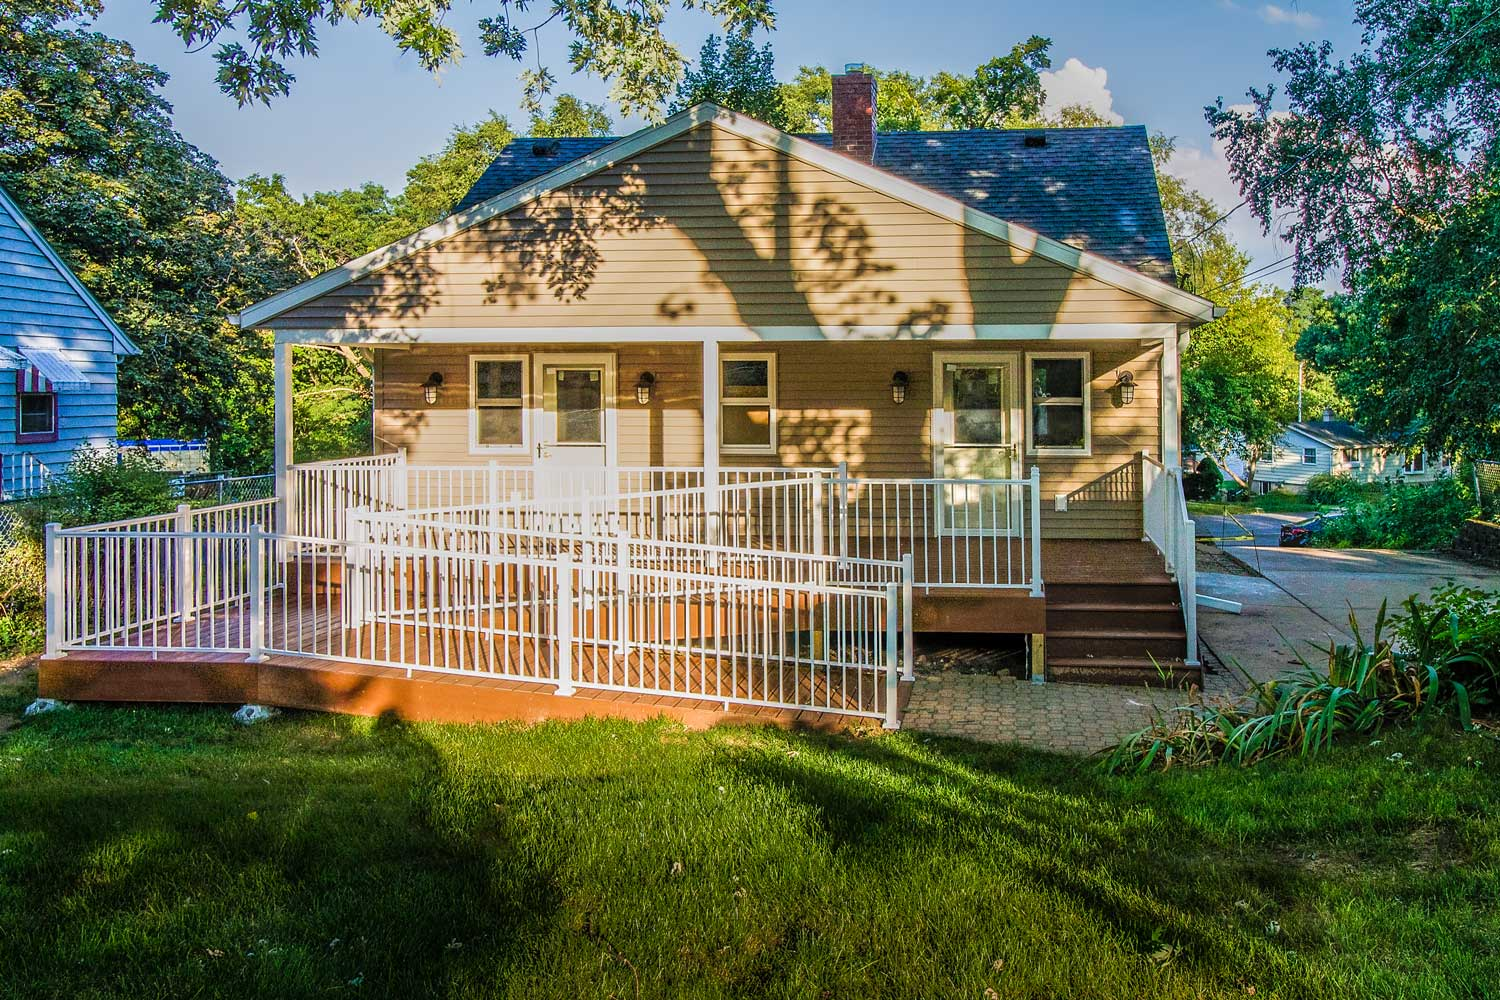 - This Cape Cod, also featured in the header photo, was remodeled for ADA-Accessibility including a ramped back porch entrance, revised kitchen layout, and barrier-free shower.